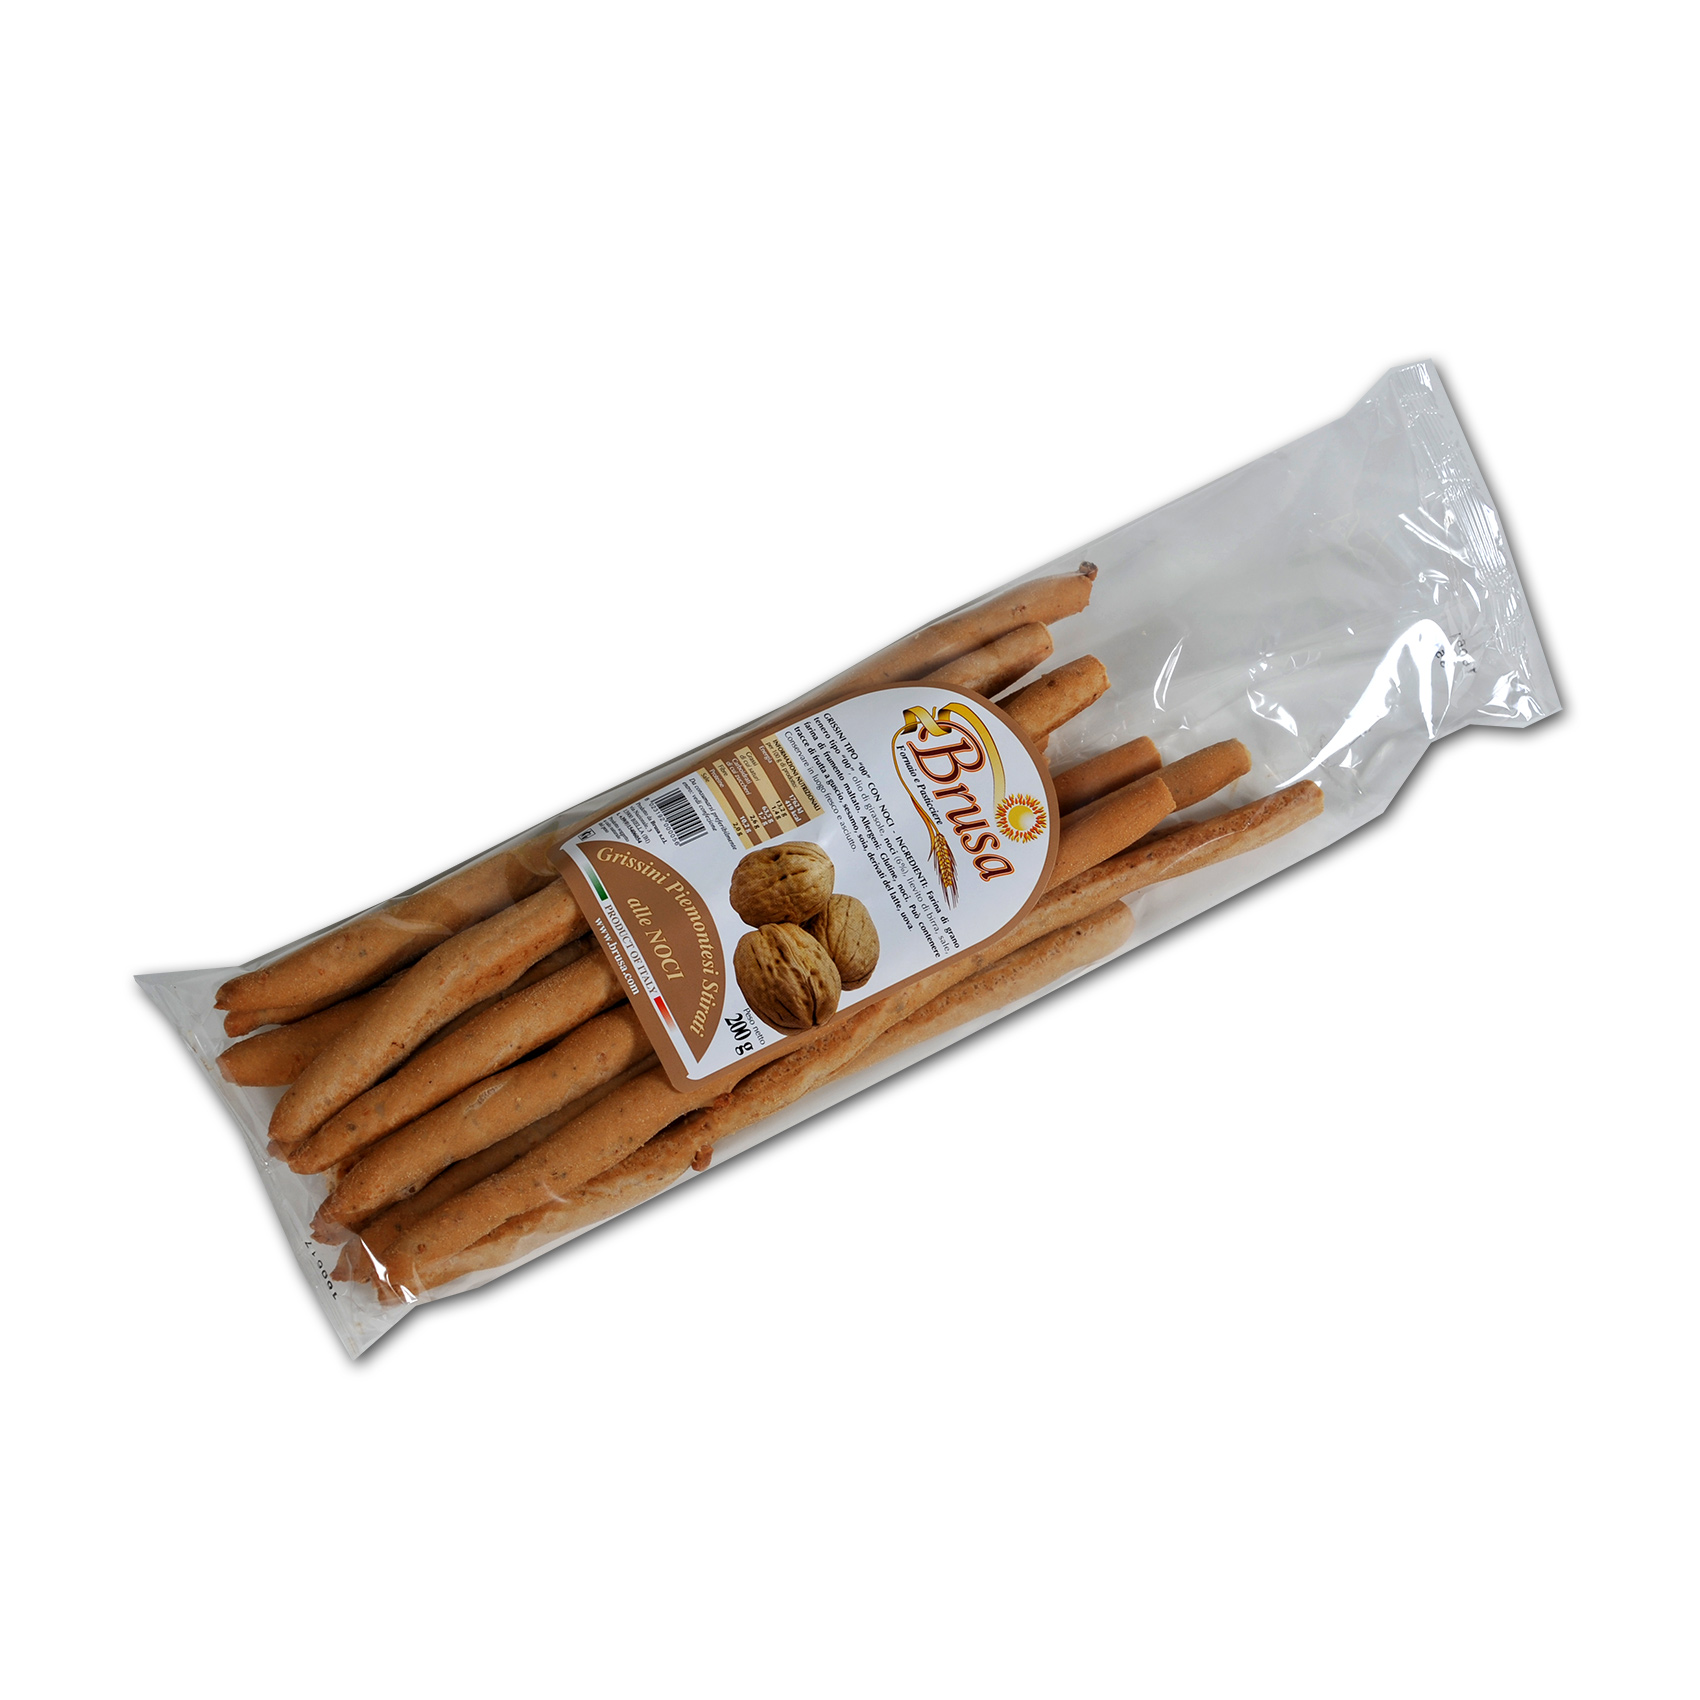 piedmontese-walnut-breadsticks-200g